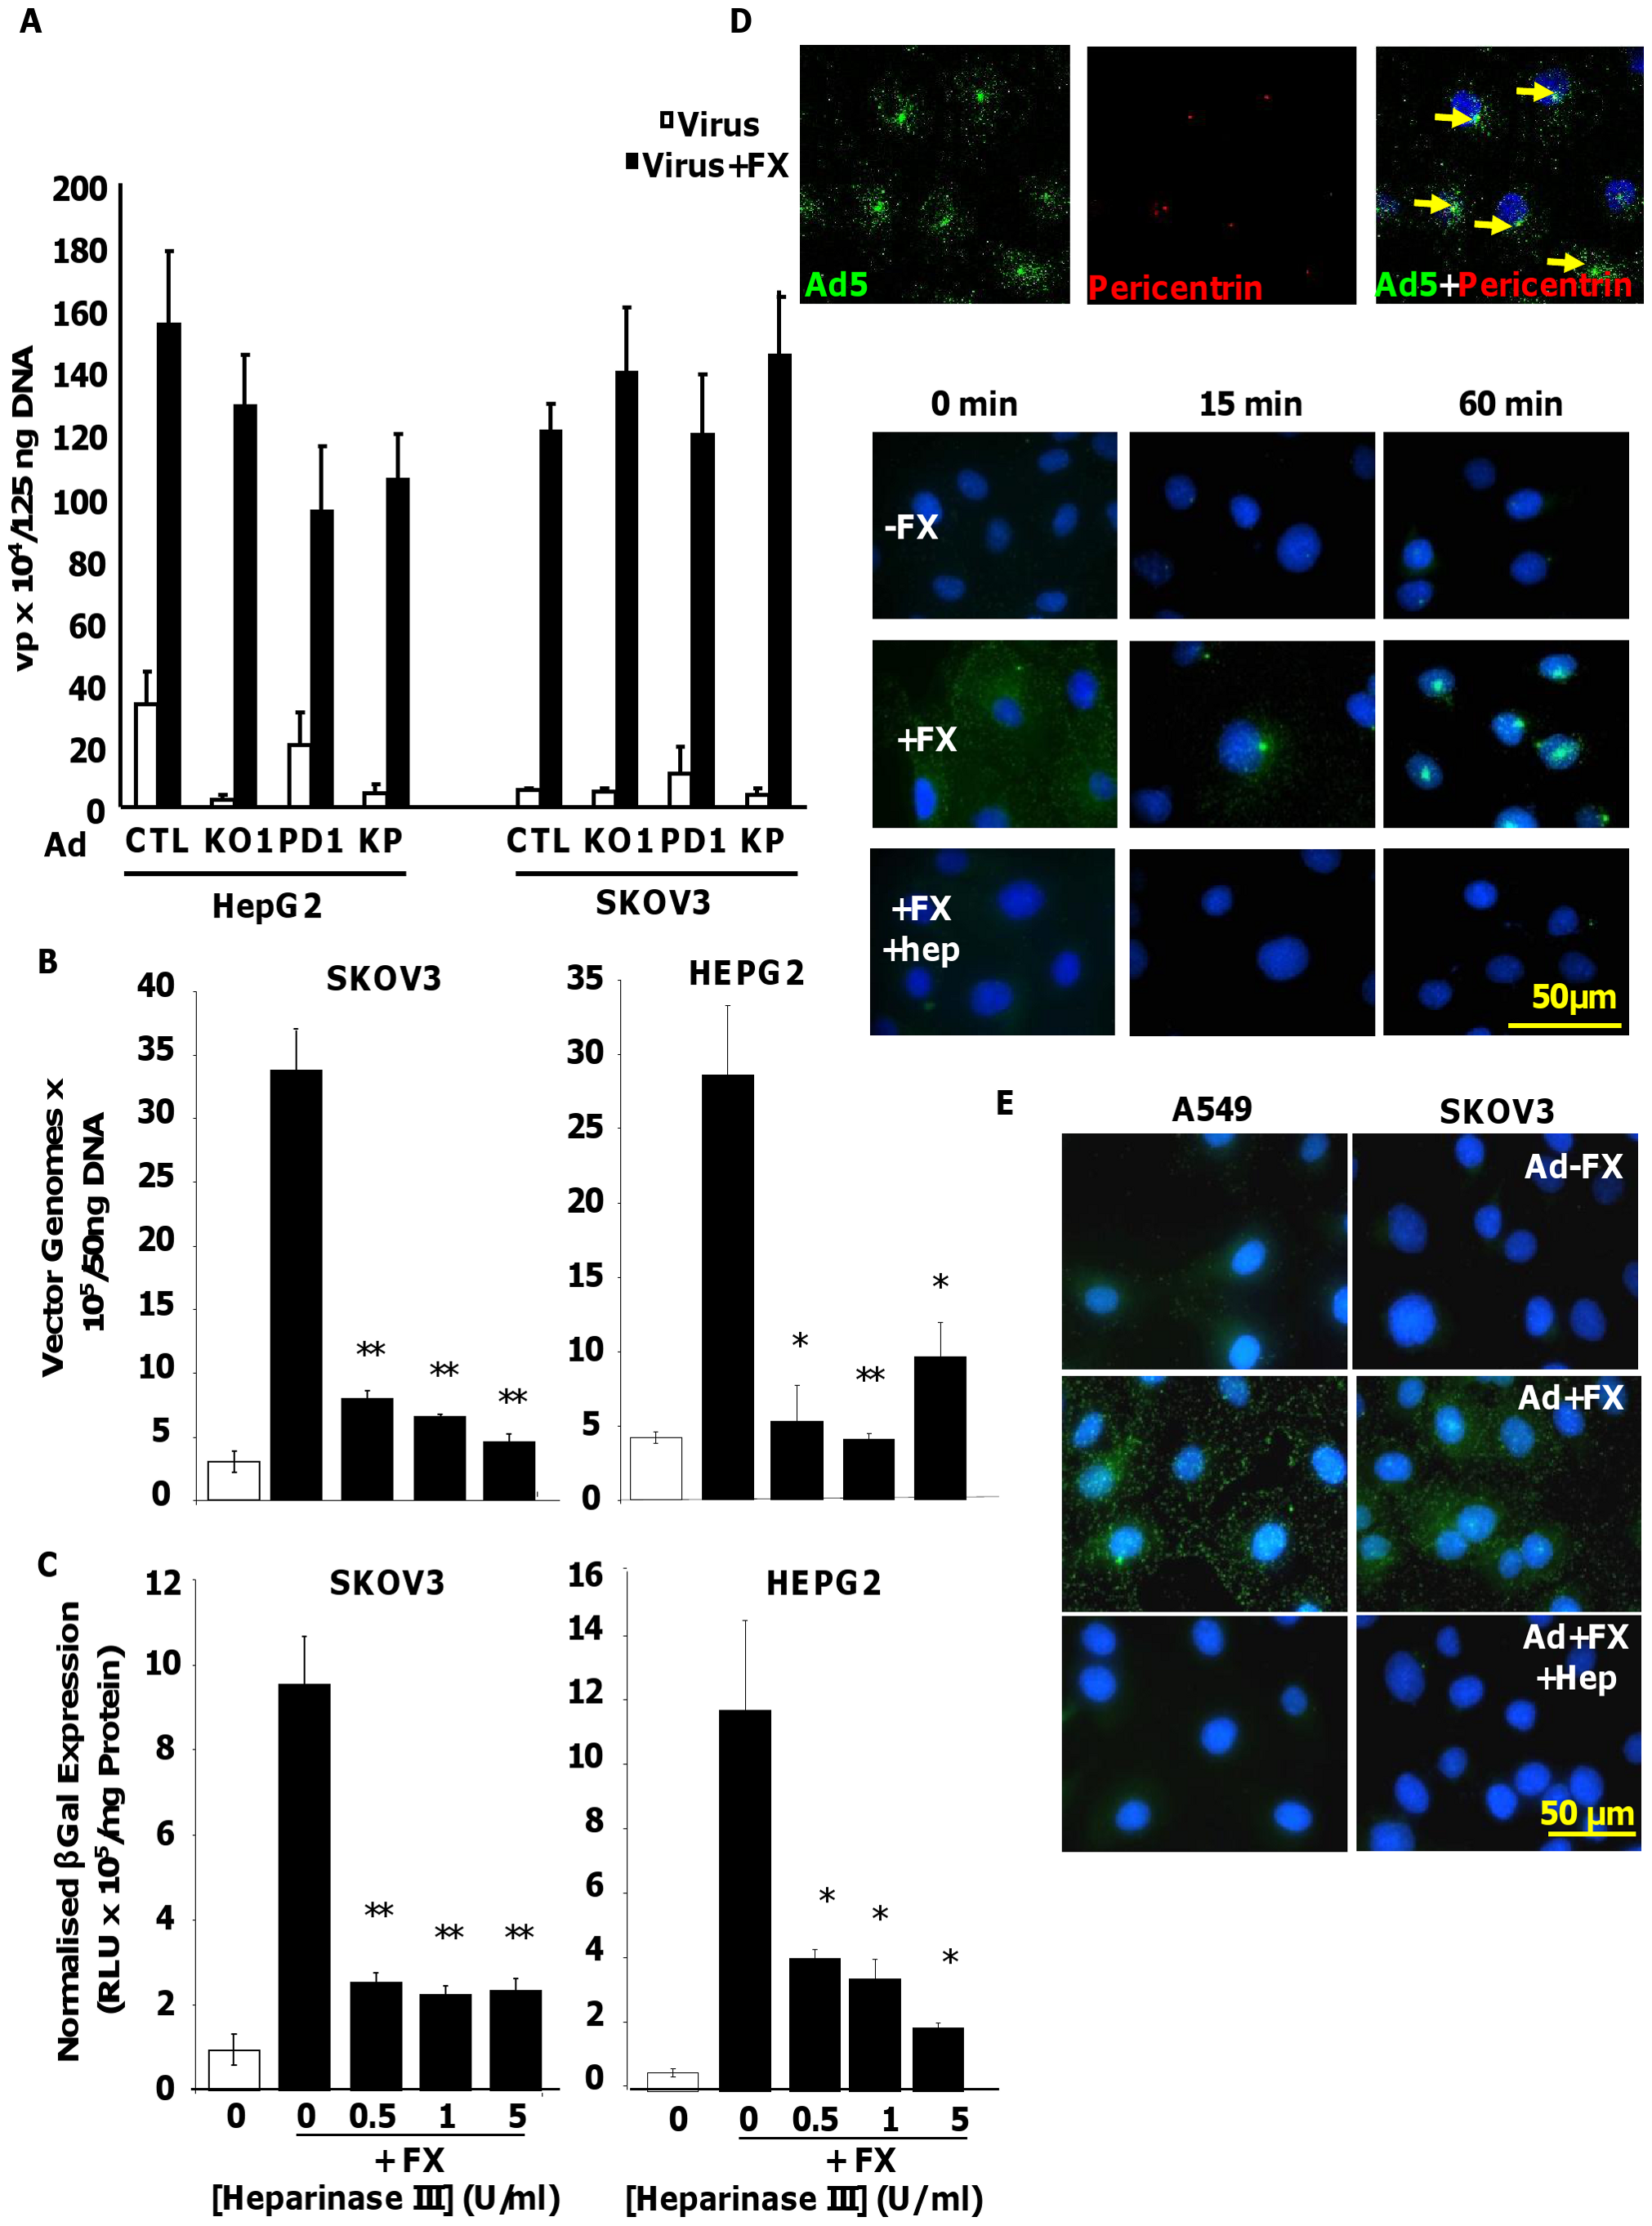 Importance of HS sidechains during Ad5 binding, cell entry, cytosolic transport and transduction <i>in vitro</i>.